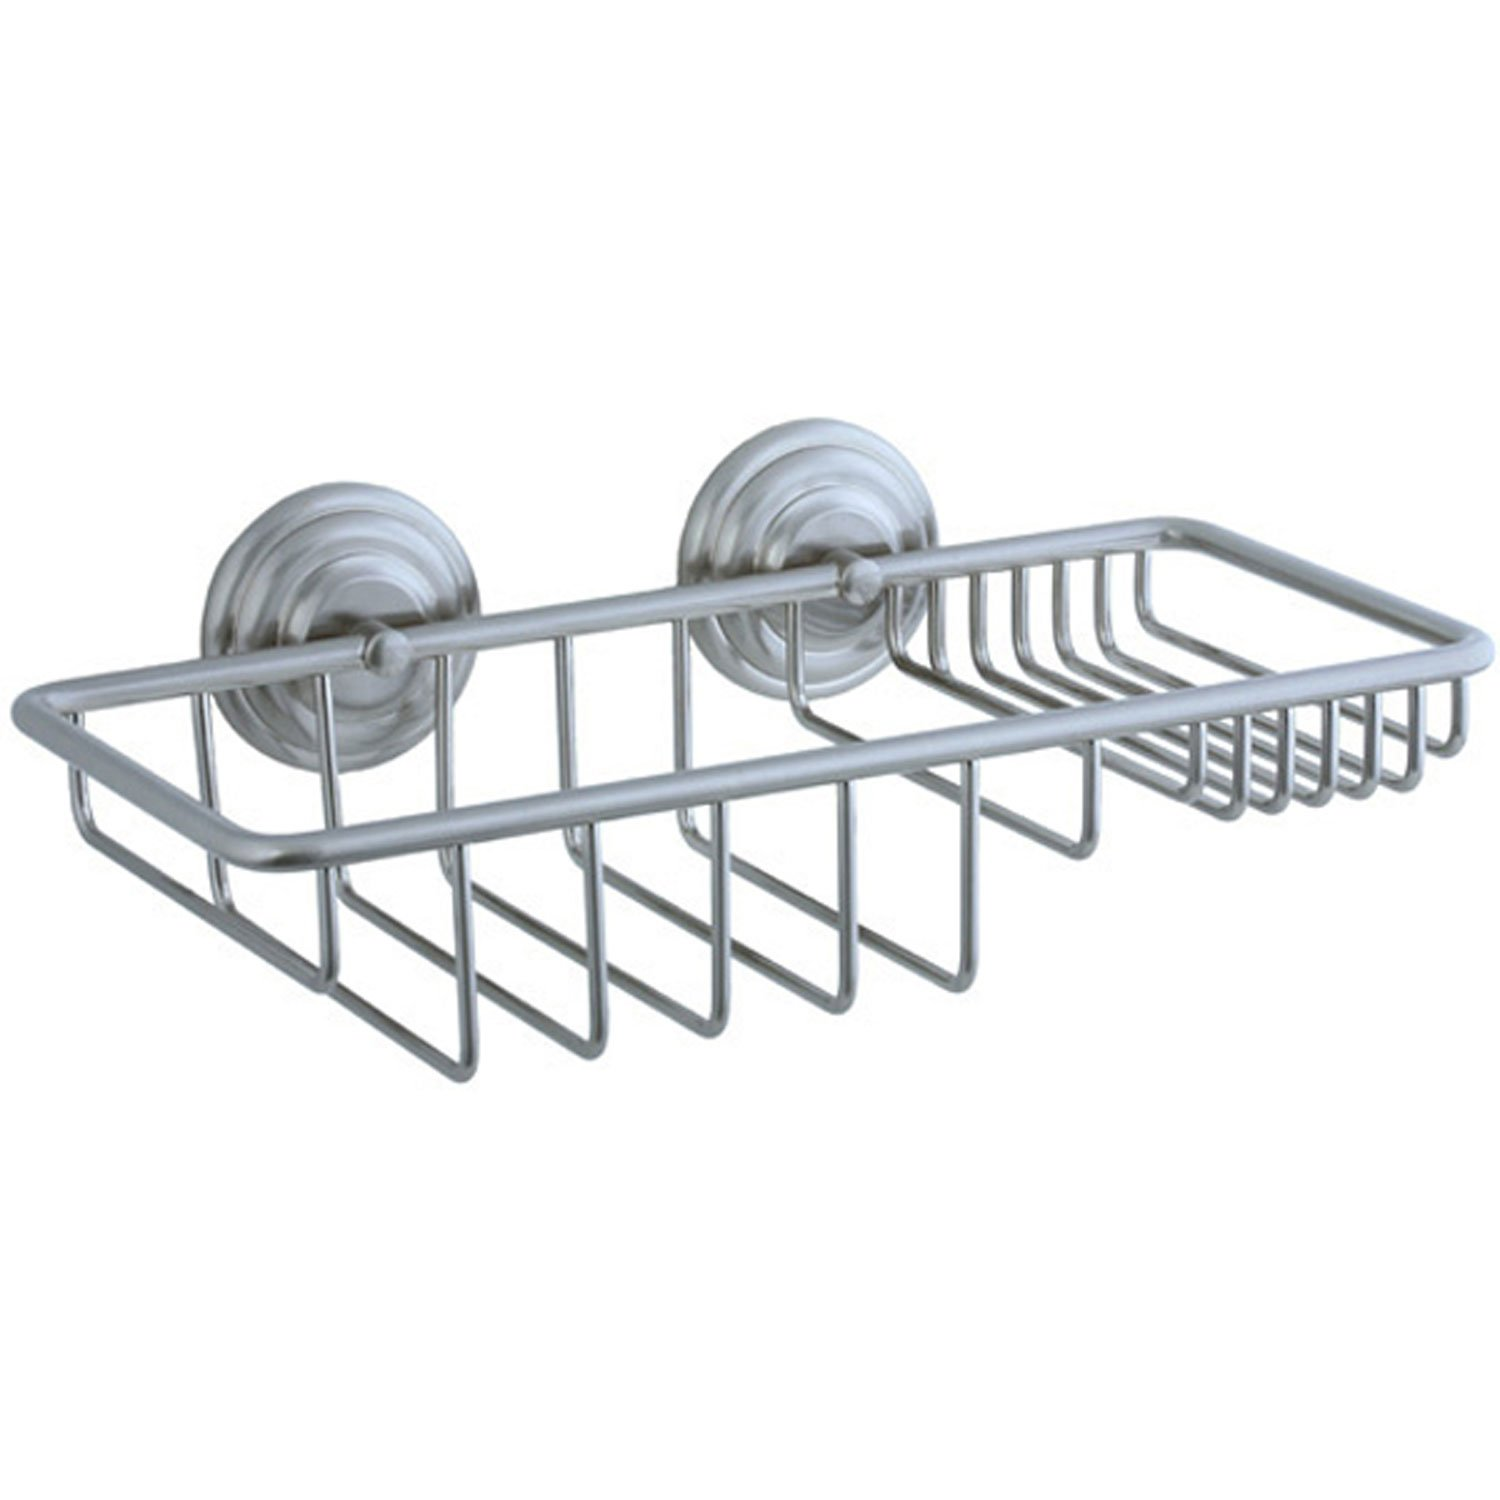 Cifial 477.875.620 Wall-Mounted Double Basket-Style Soap Holder, Satin Nickel